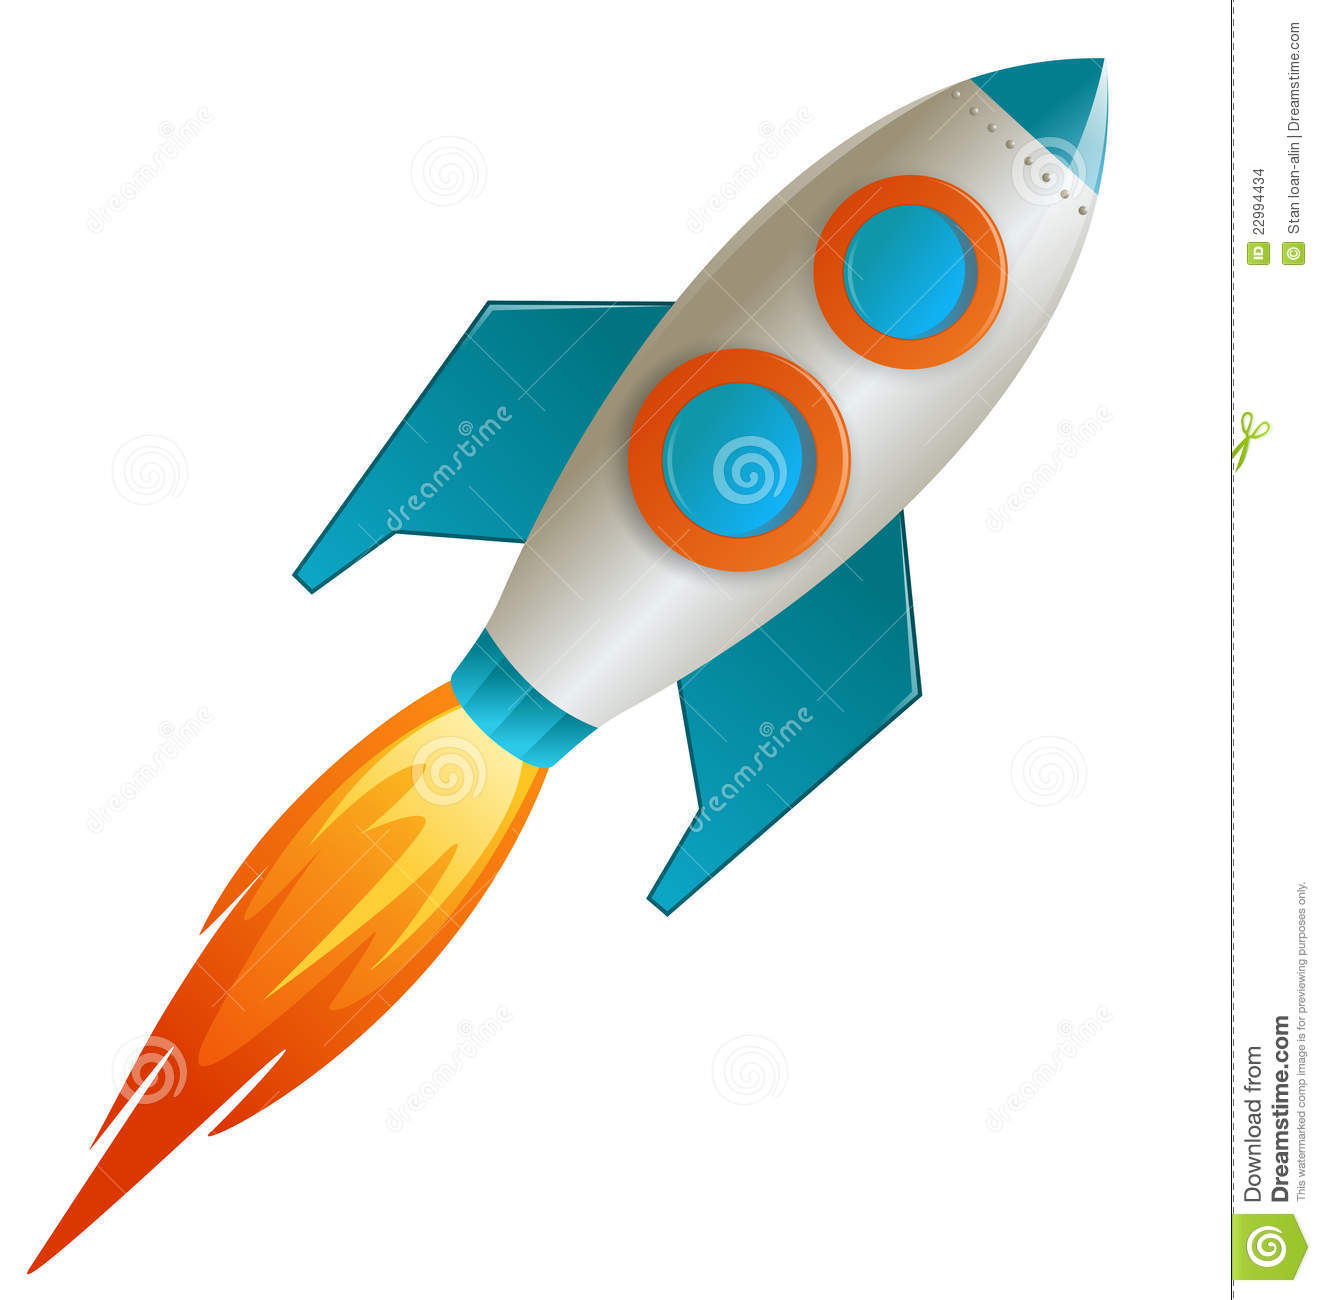 rocket stock illustrations 135 105 rocket stock illustrations vectors clipart dreamstime dreamstime com